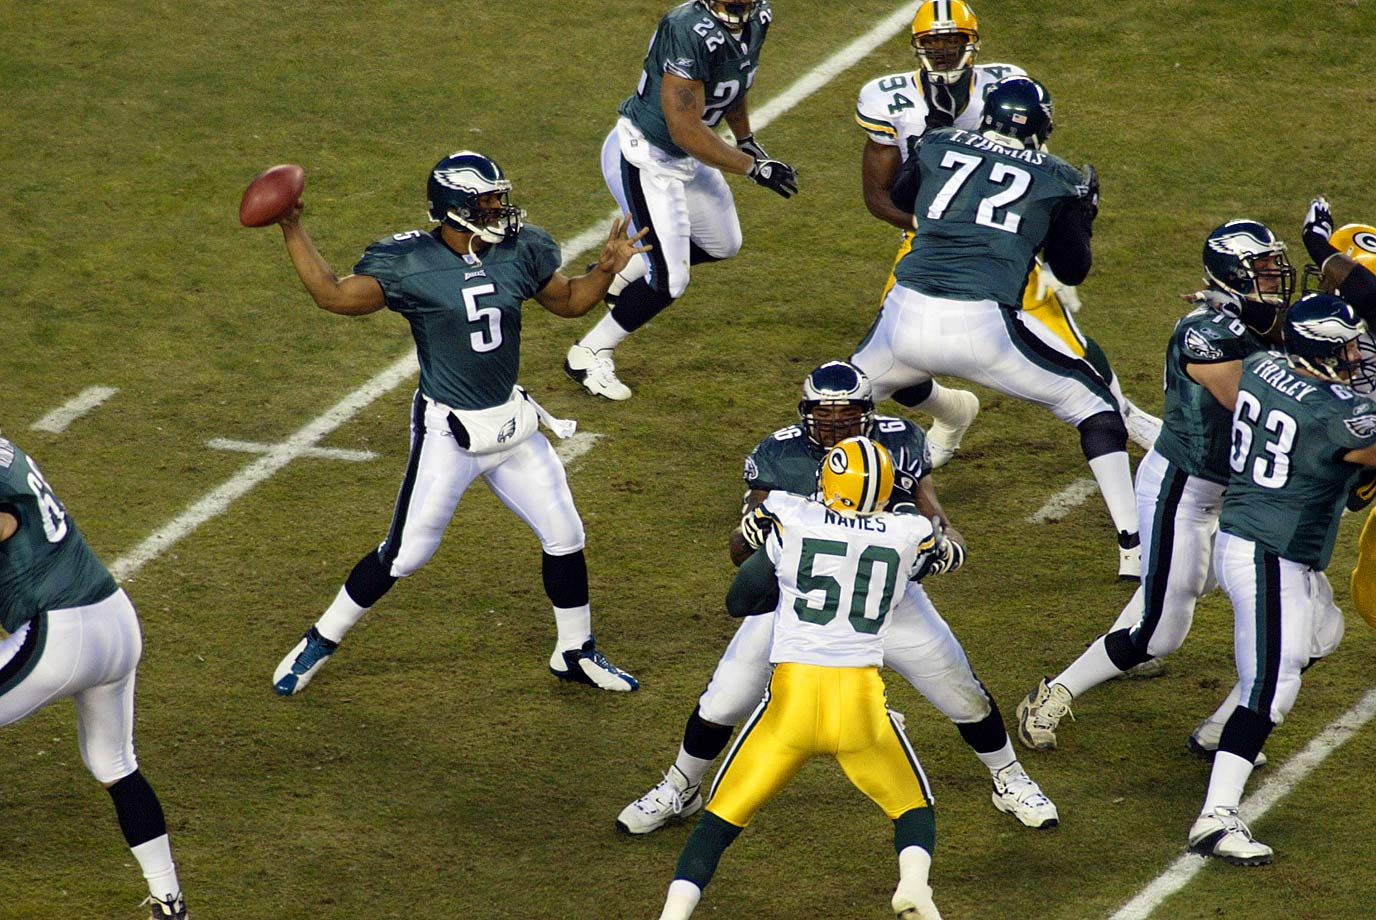 The Eagles trailed by a field goal with 1:12 left when they faced a fourth-and-26 at their 25-yard line. There aren't many entries in the playbook for such situations. But Donovan McNabb found Freddie Mitchell between defenders over the middle for 29 yards, and Philadelphia continued the drive for a tying field goal, then kicked another one in overtime to win.